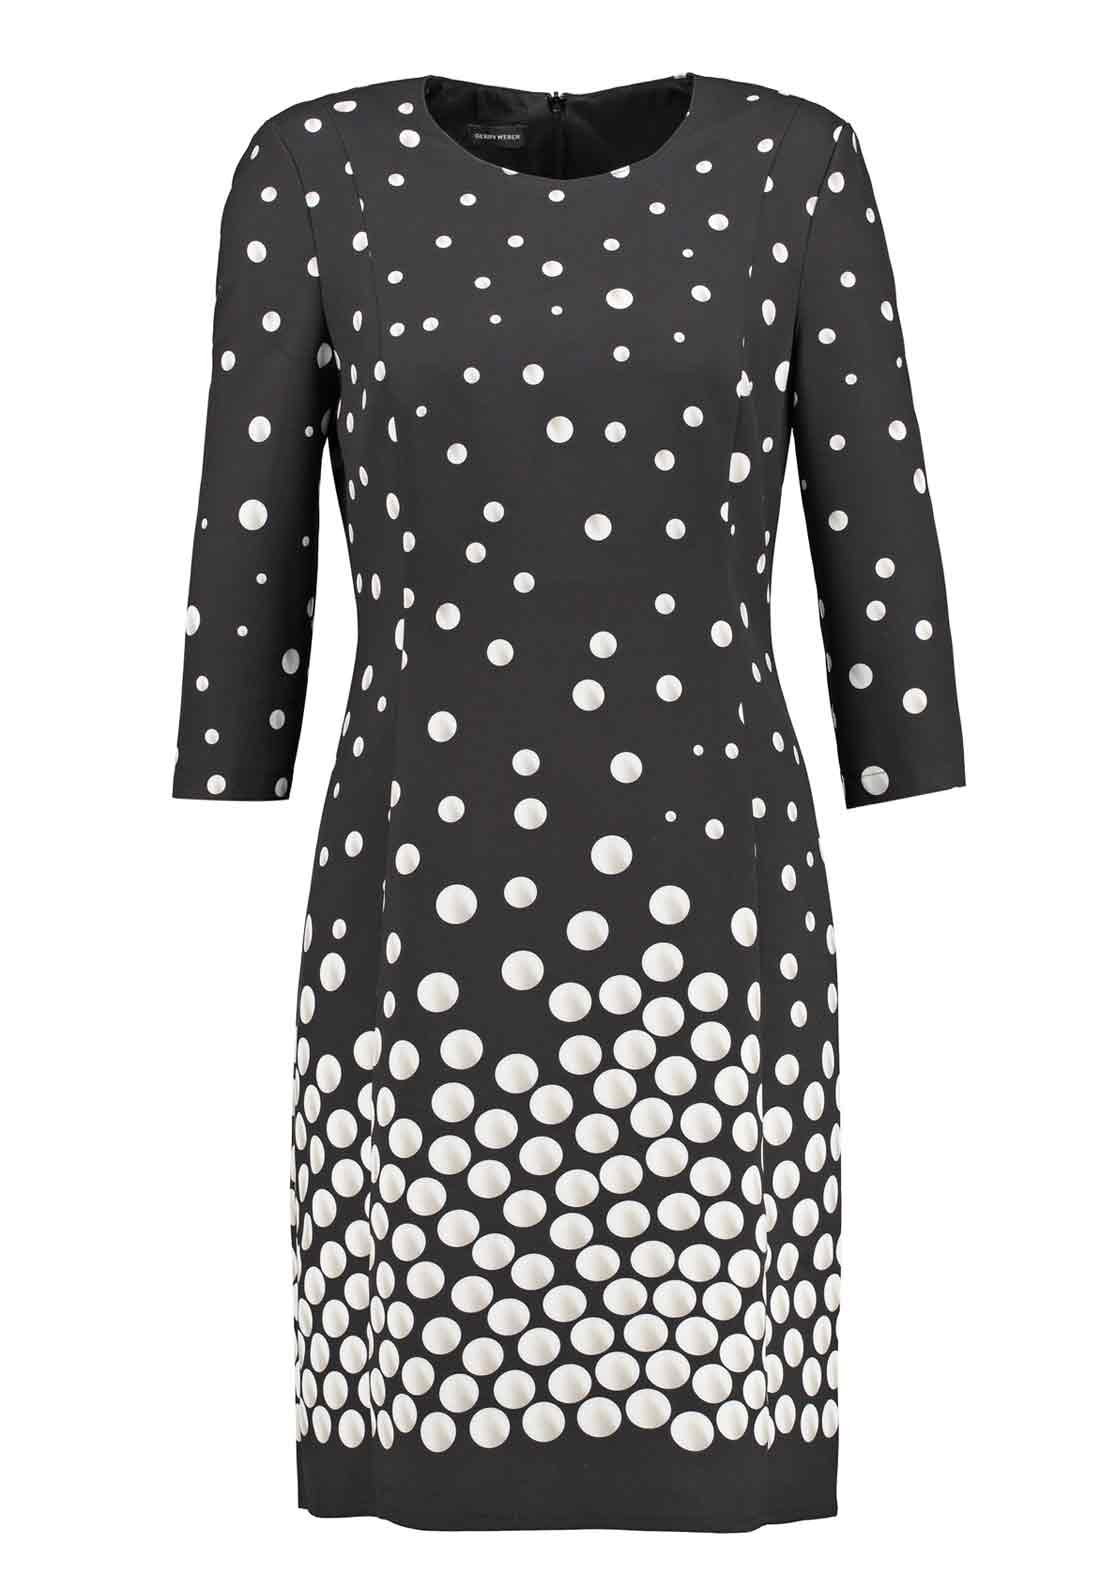 Gerry Weber Spot Print Cropped Sleeve Shift Dress, Black and Cream